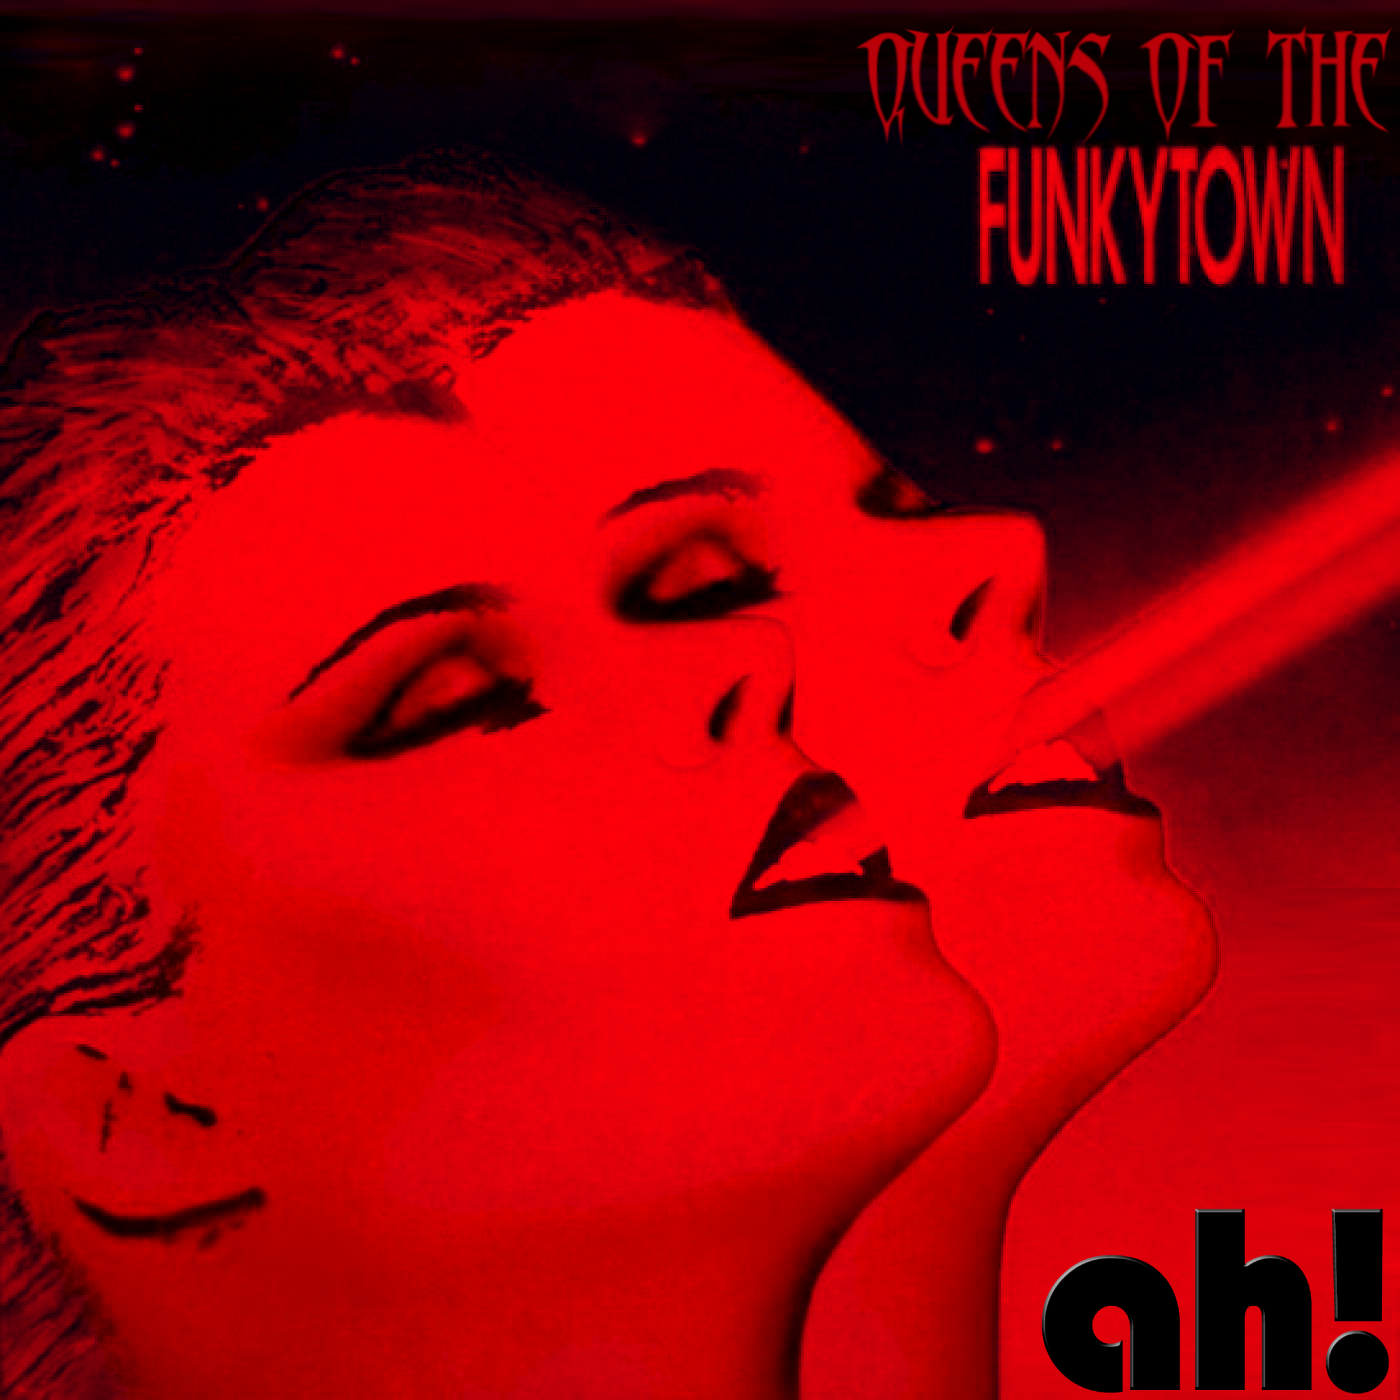 Queens of the Funkytown (Queens of the Stone Age vs. Lipps Inc.)